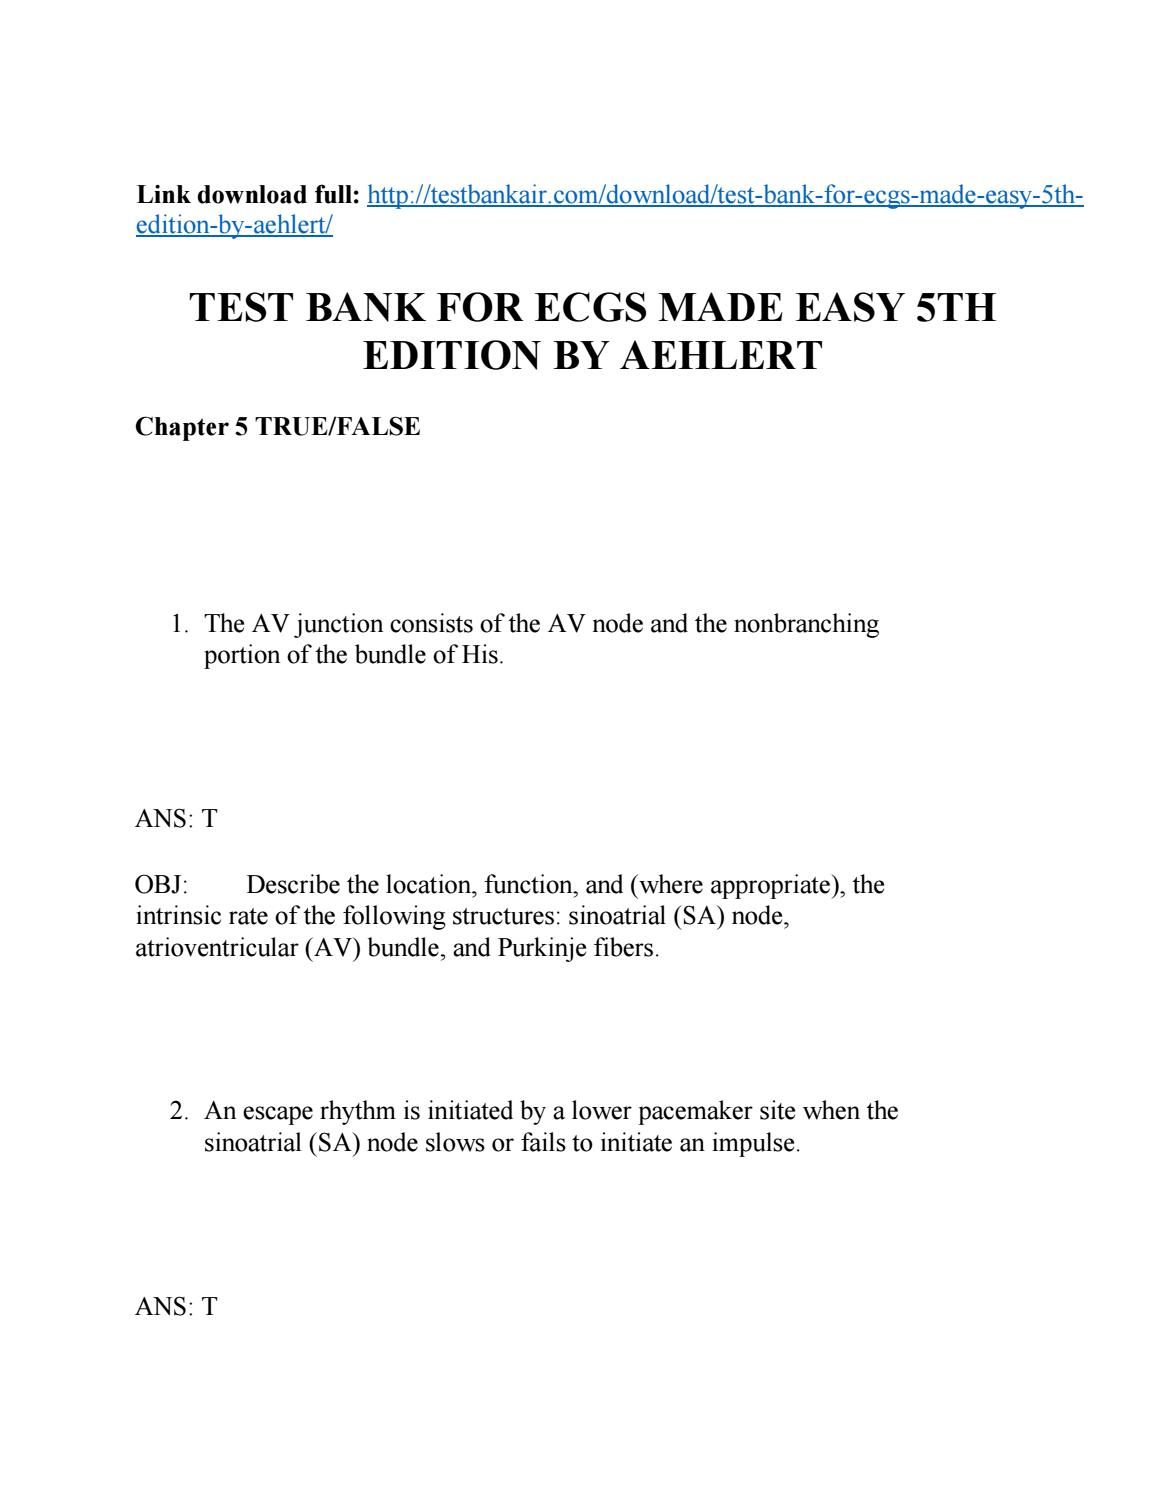 Download test bank for ecgs made easy 5th edition by aehlert